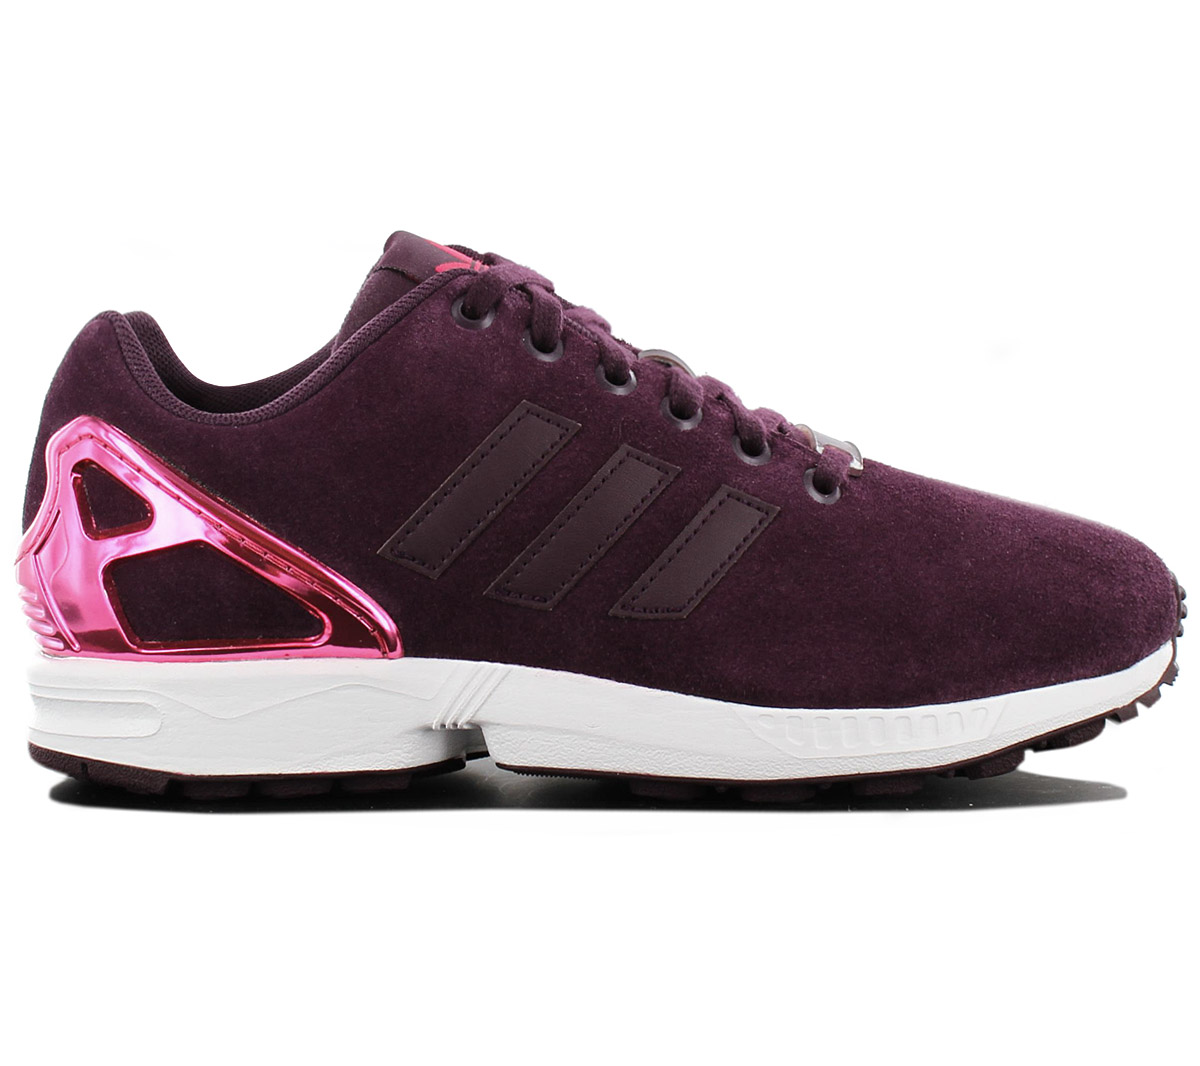 sports shoes 4c5ca 1ad86 Details about Adidas Zx Flux W Women's Sneaker Leather Purple B35320  Sneakers